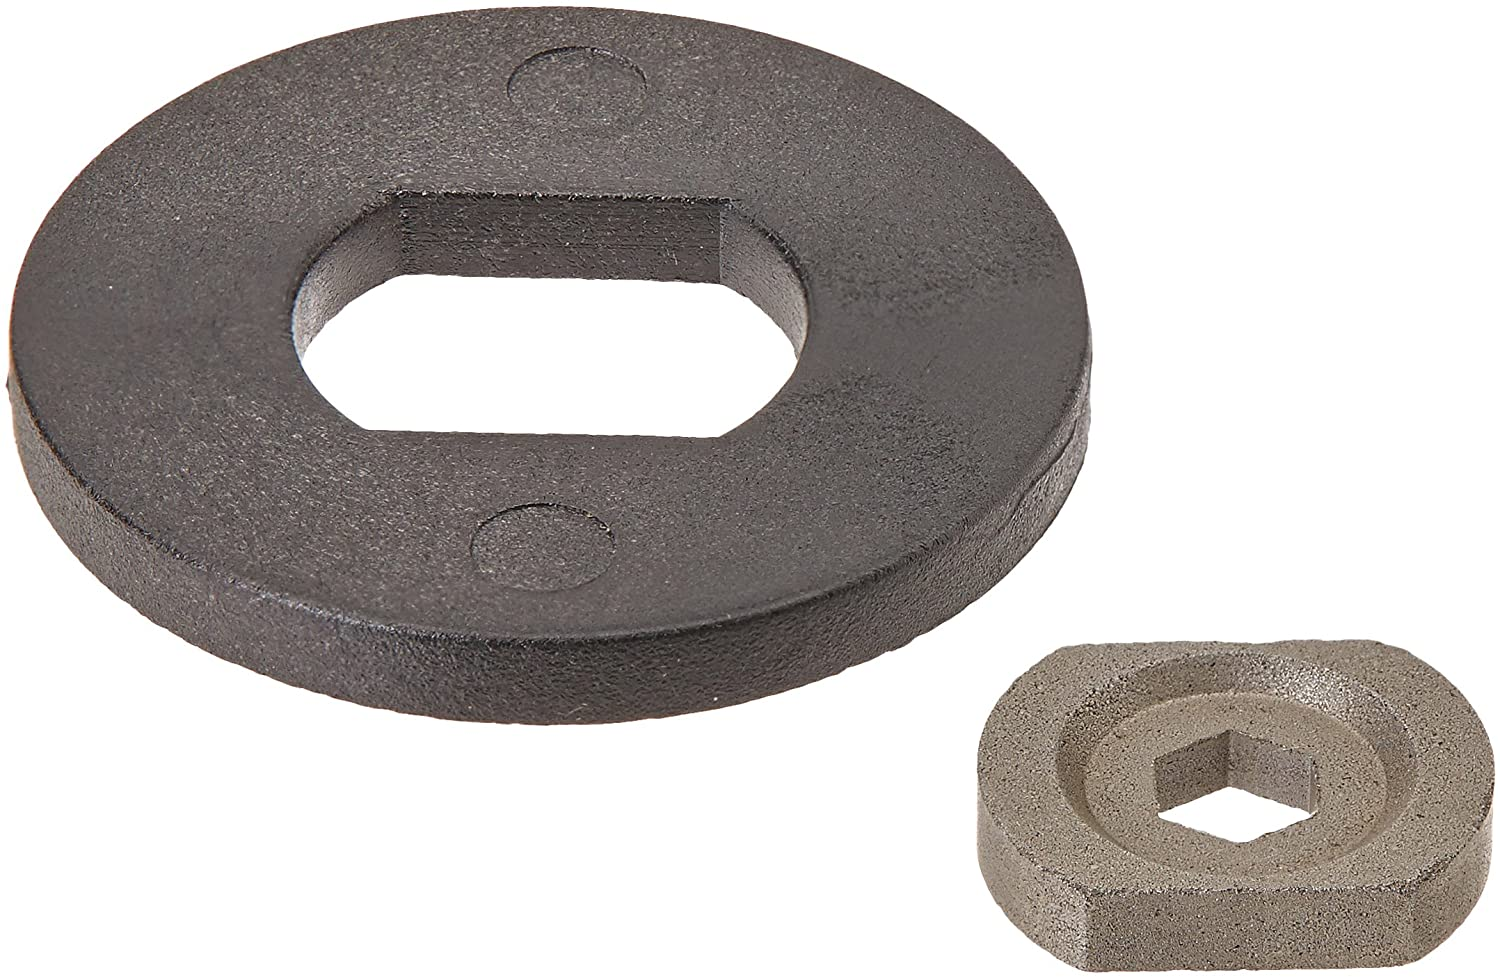 Traxxas 4185 Brake Disc with Adapter